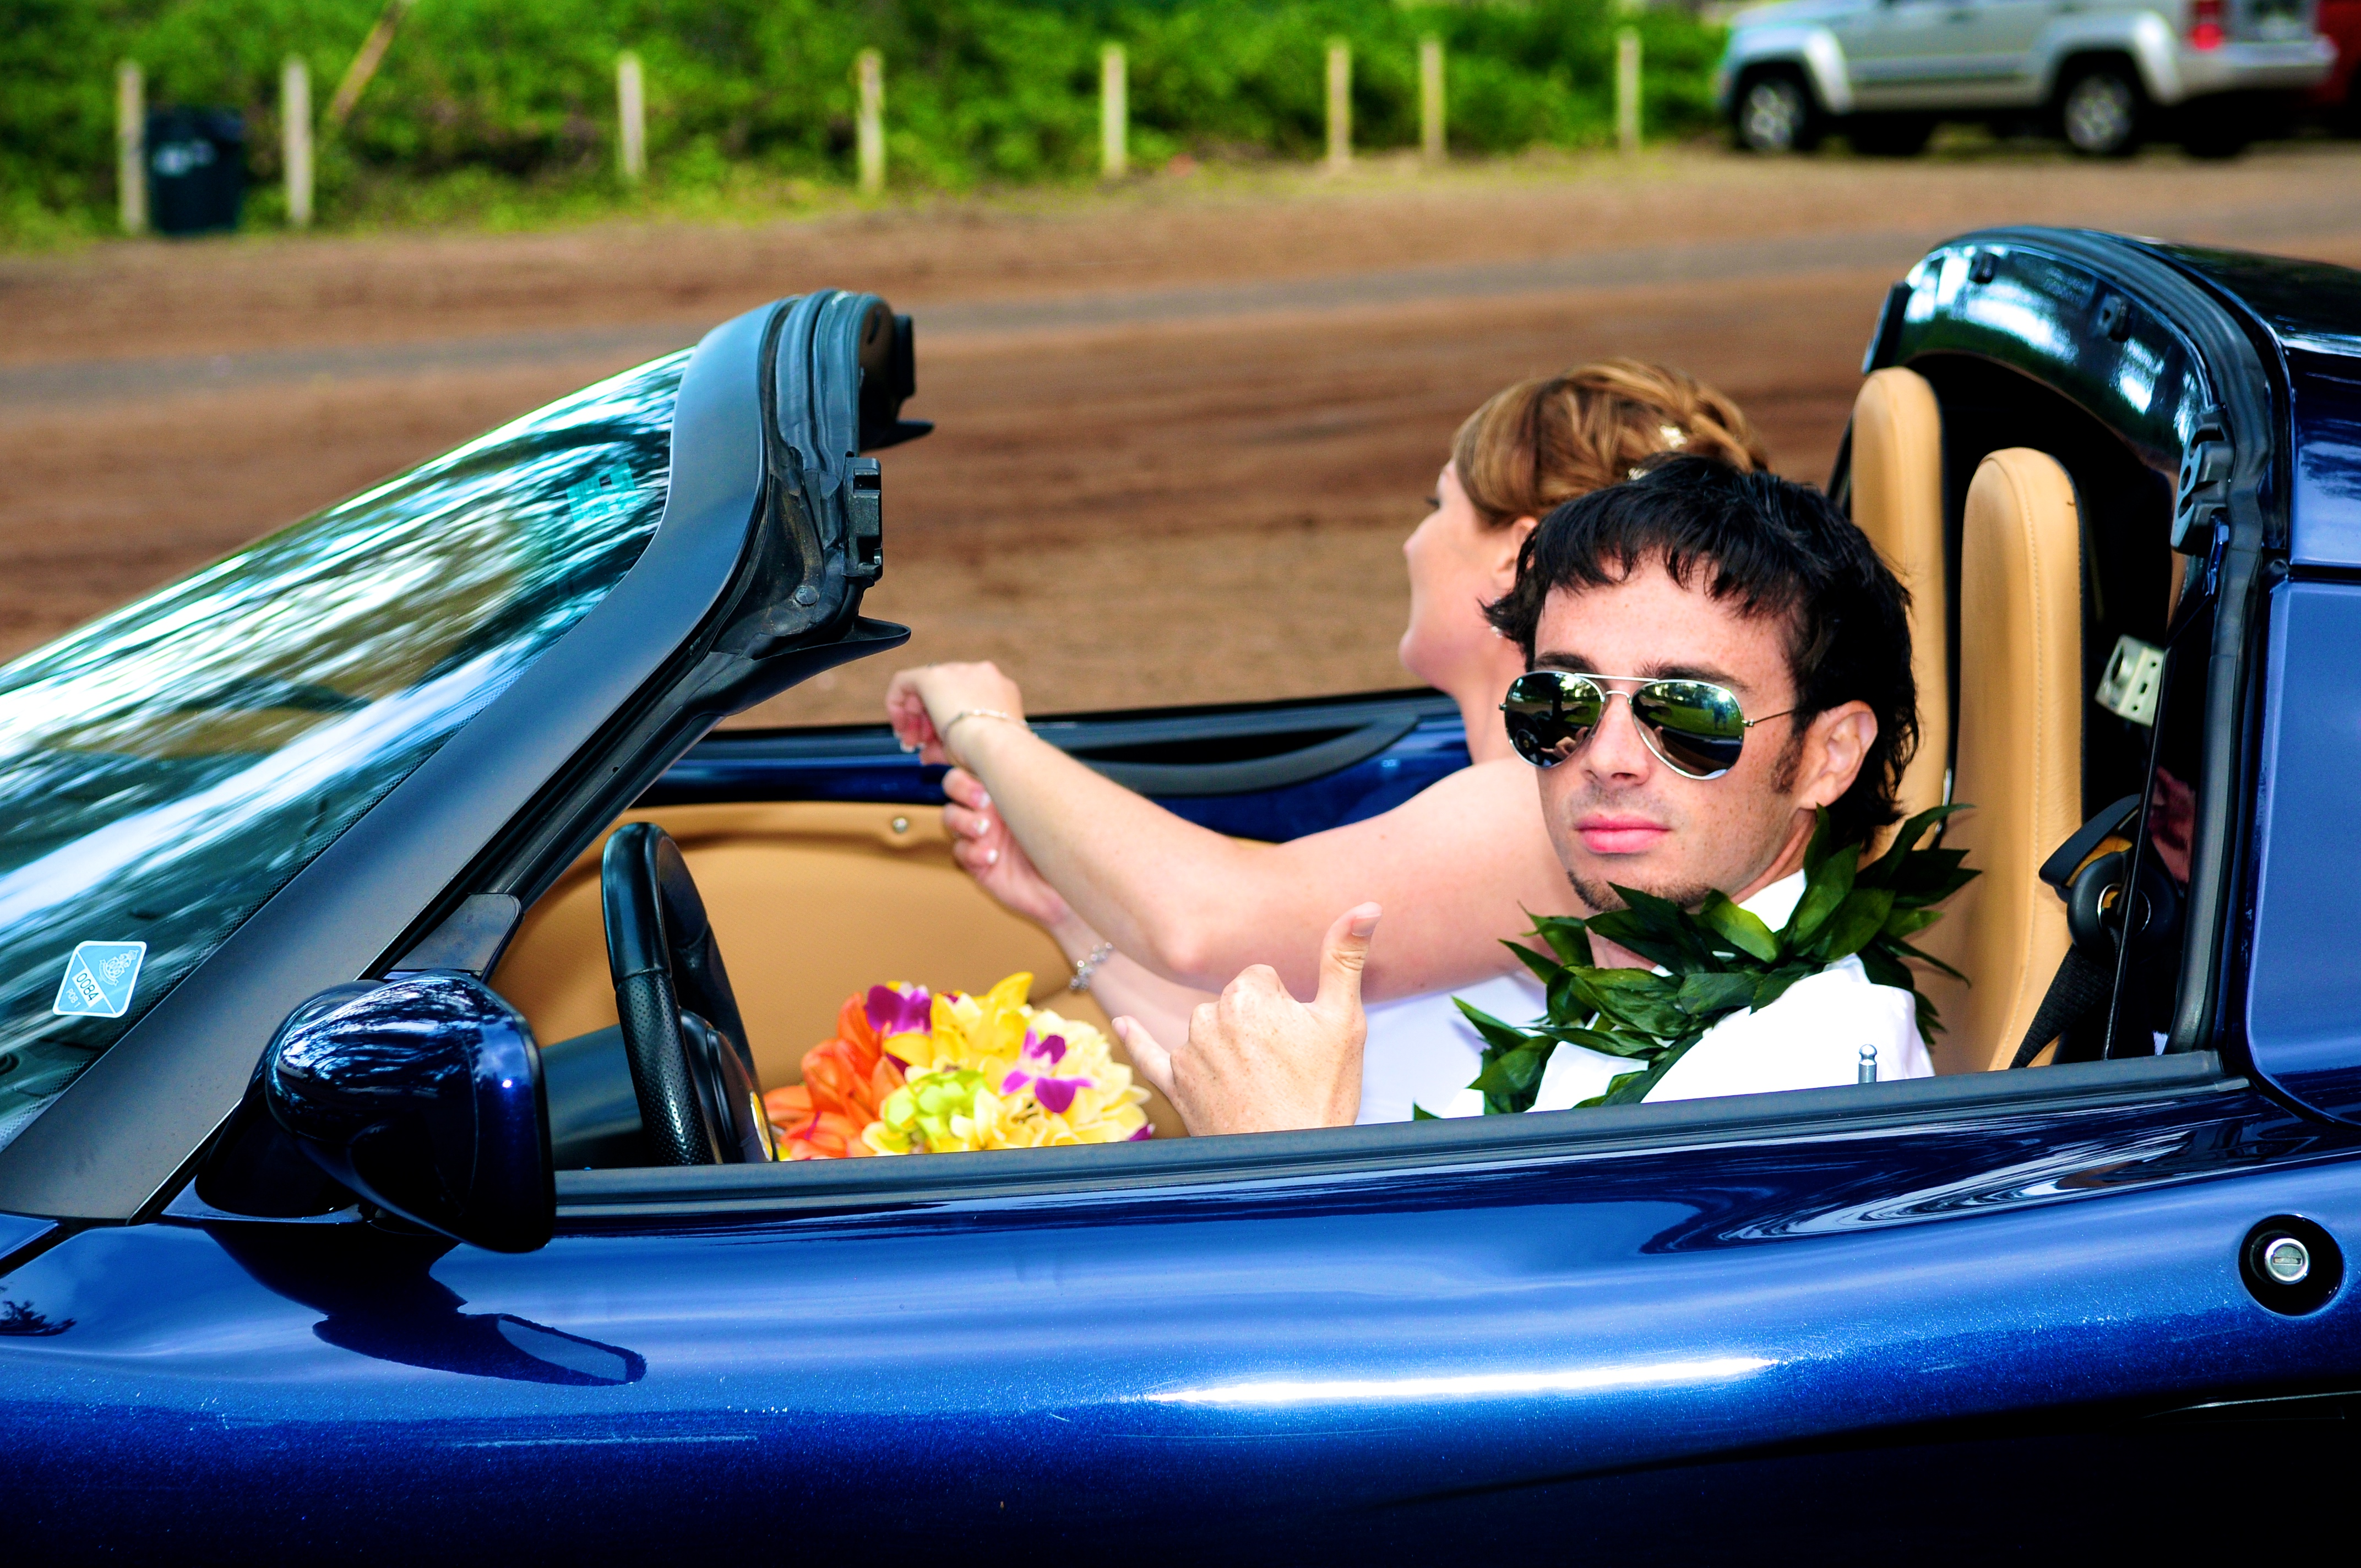 alohaislandweddings- Lotus car -34